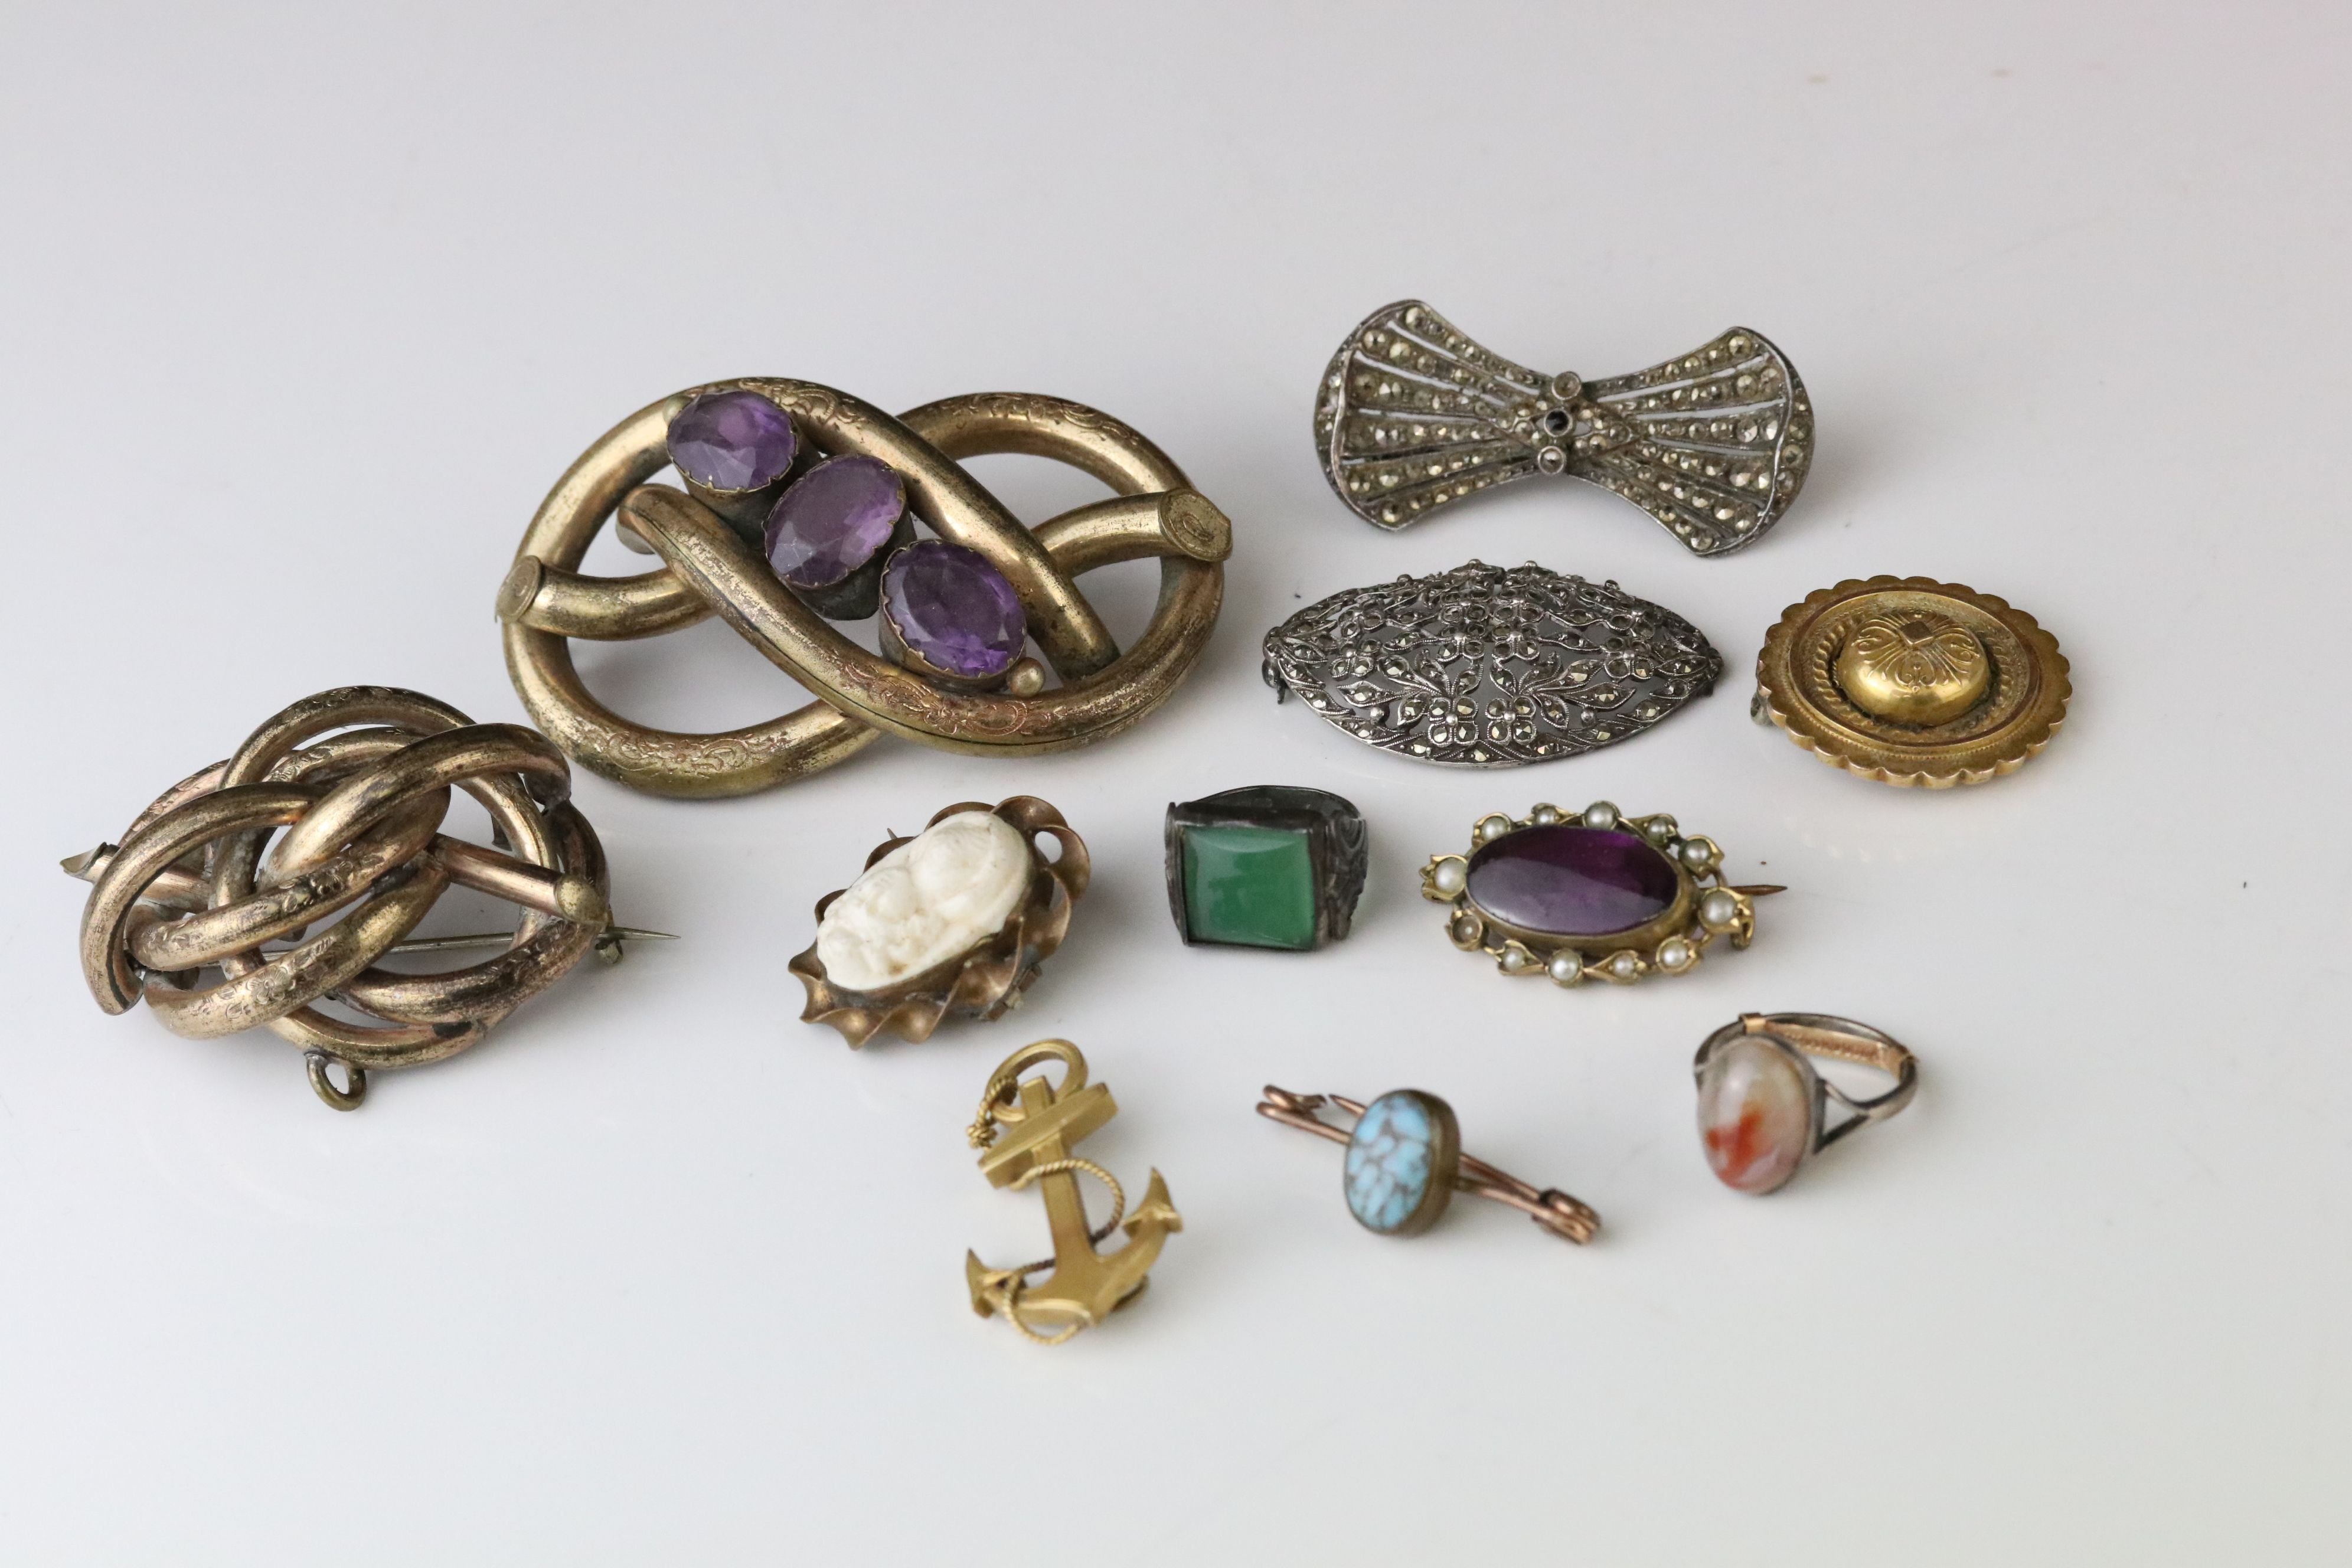 Collection of Victorian and later costume jewellery to include large knot brooch; three stone